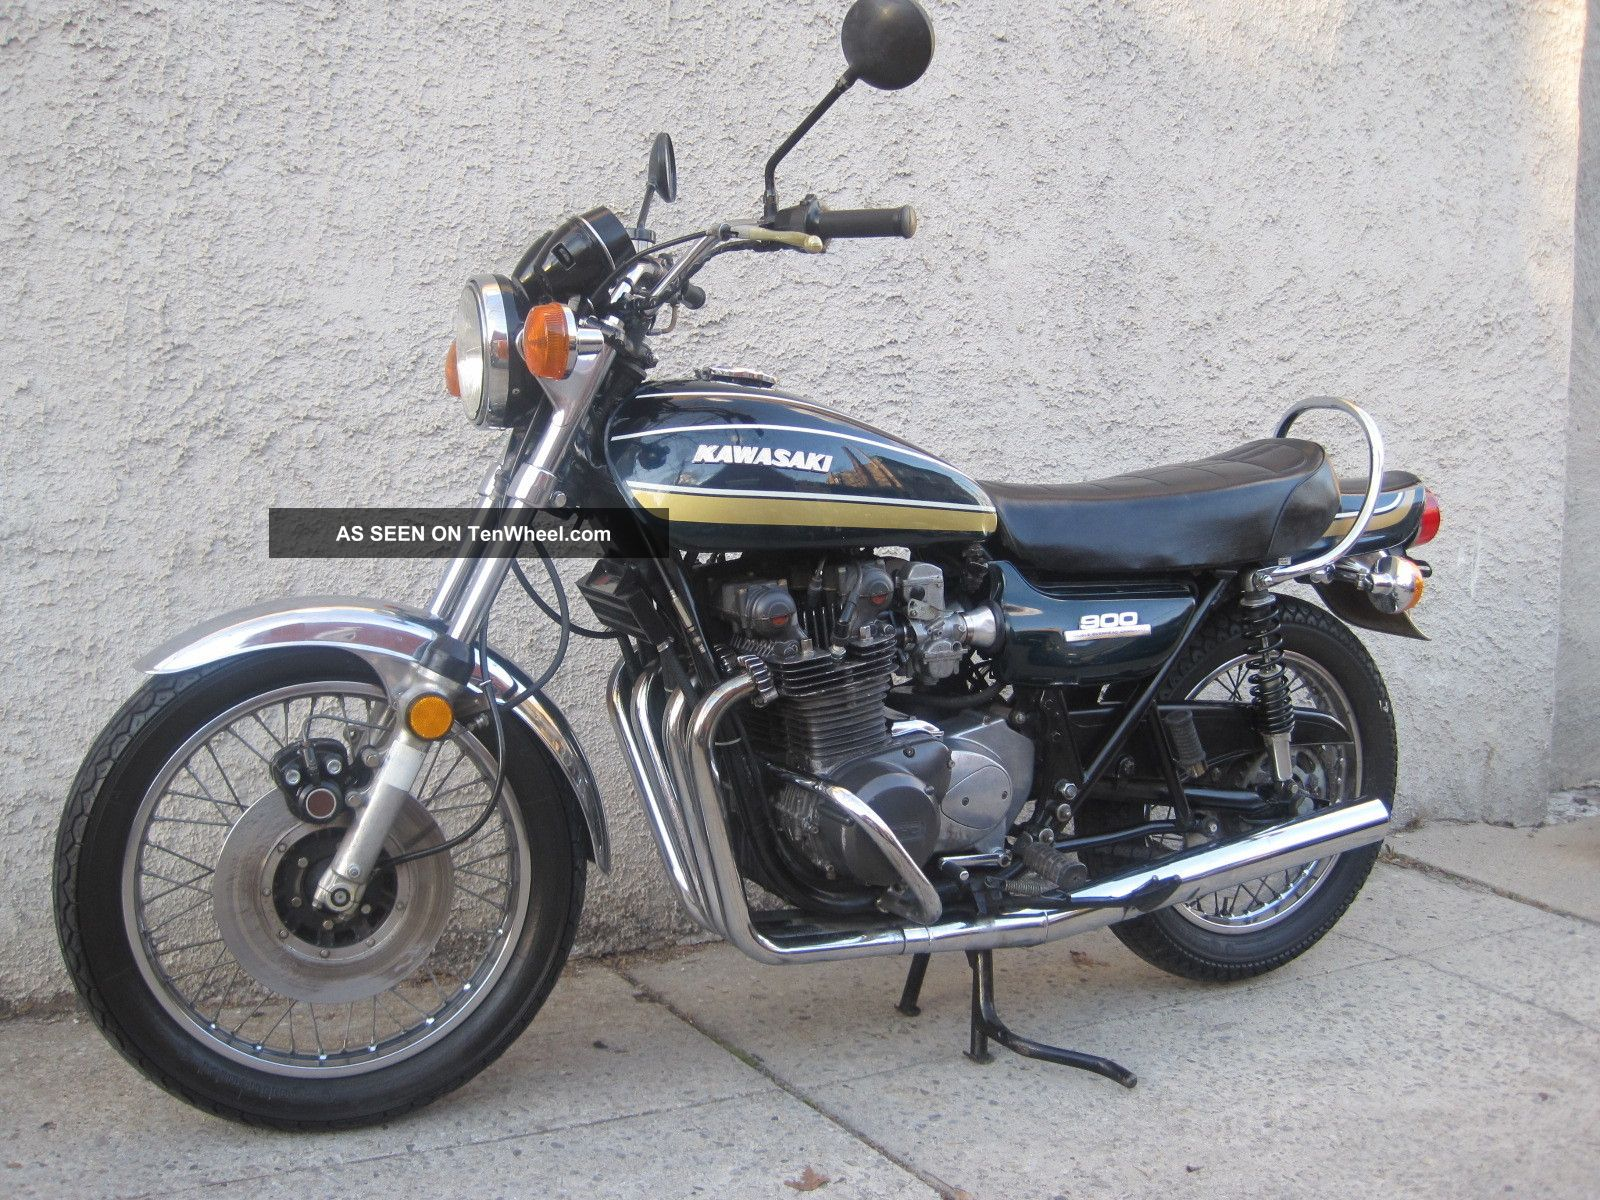 1980 harley davidson sportster specs harley davidson sportster 1000 specs harley davidson. Black Bedroom Furniture Sets. Home Design Ideas